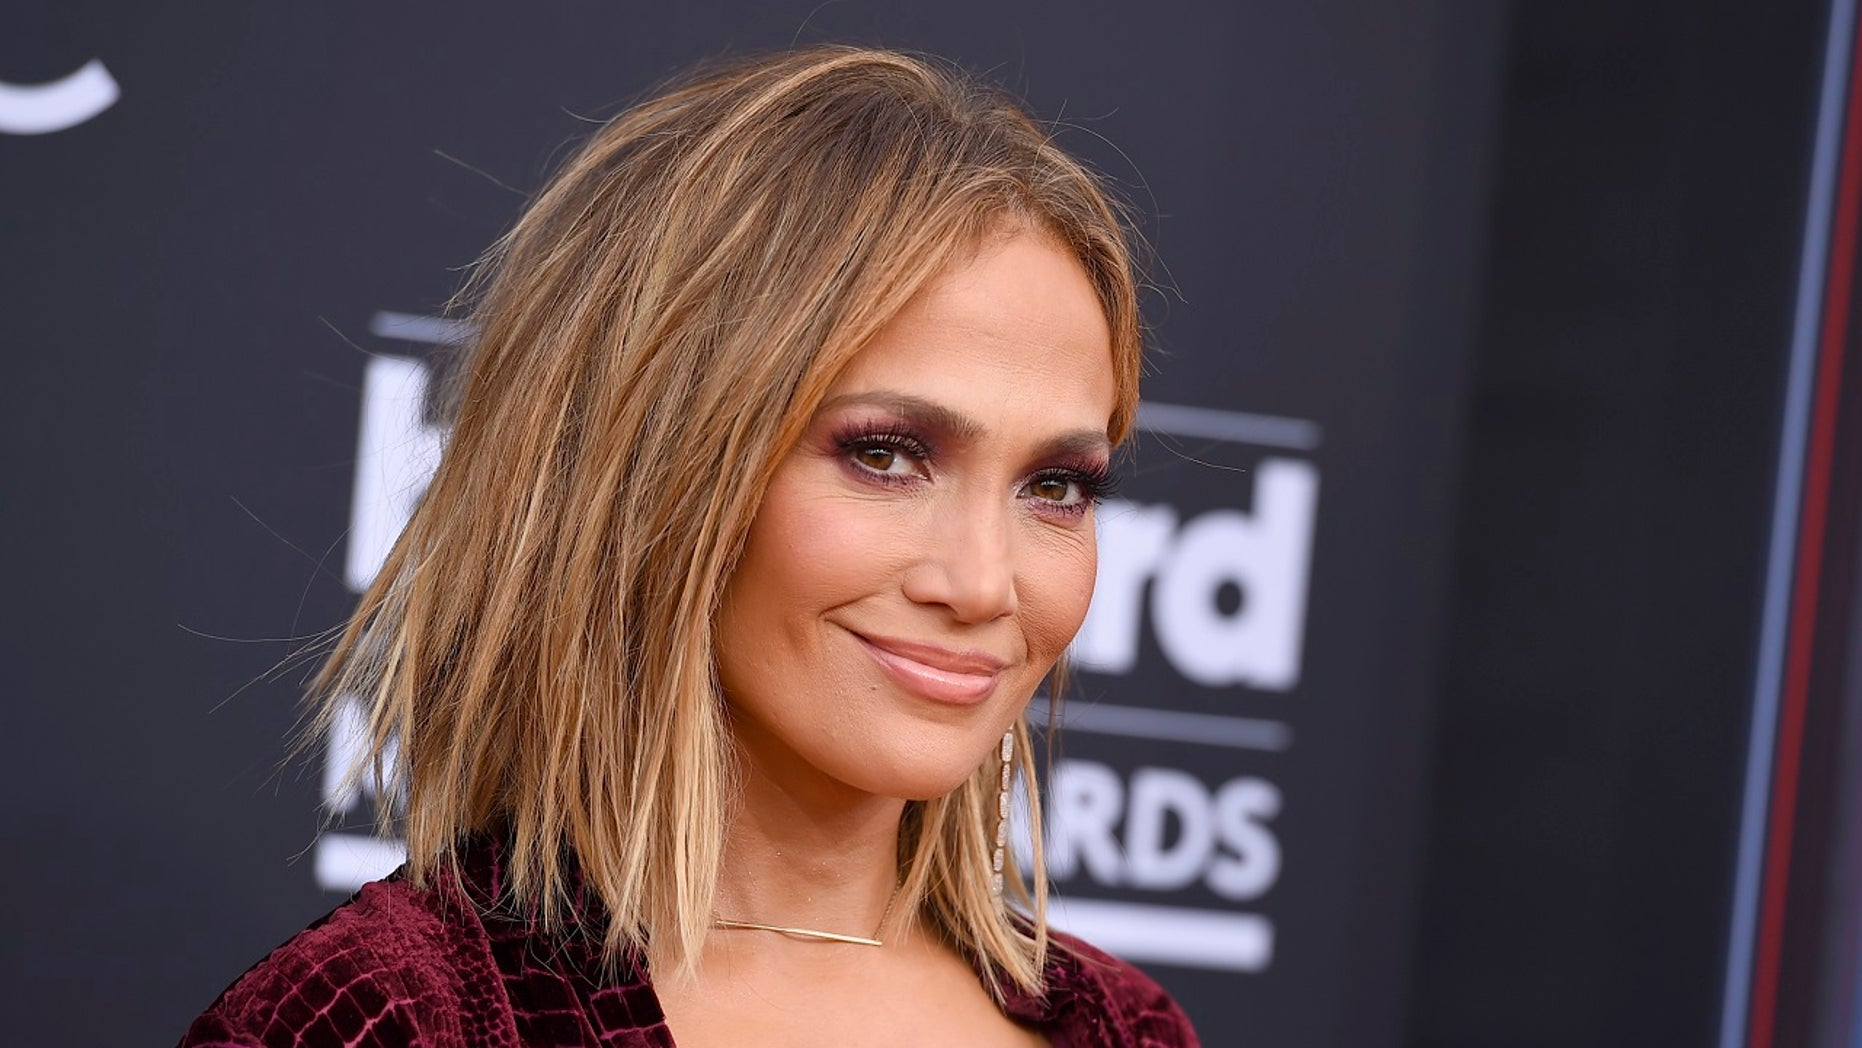 Jennifer Lopez will be given the MTV Michael Jackson Video Vanguard Award this year, the network announced Tuesday.